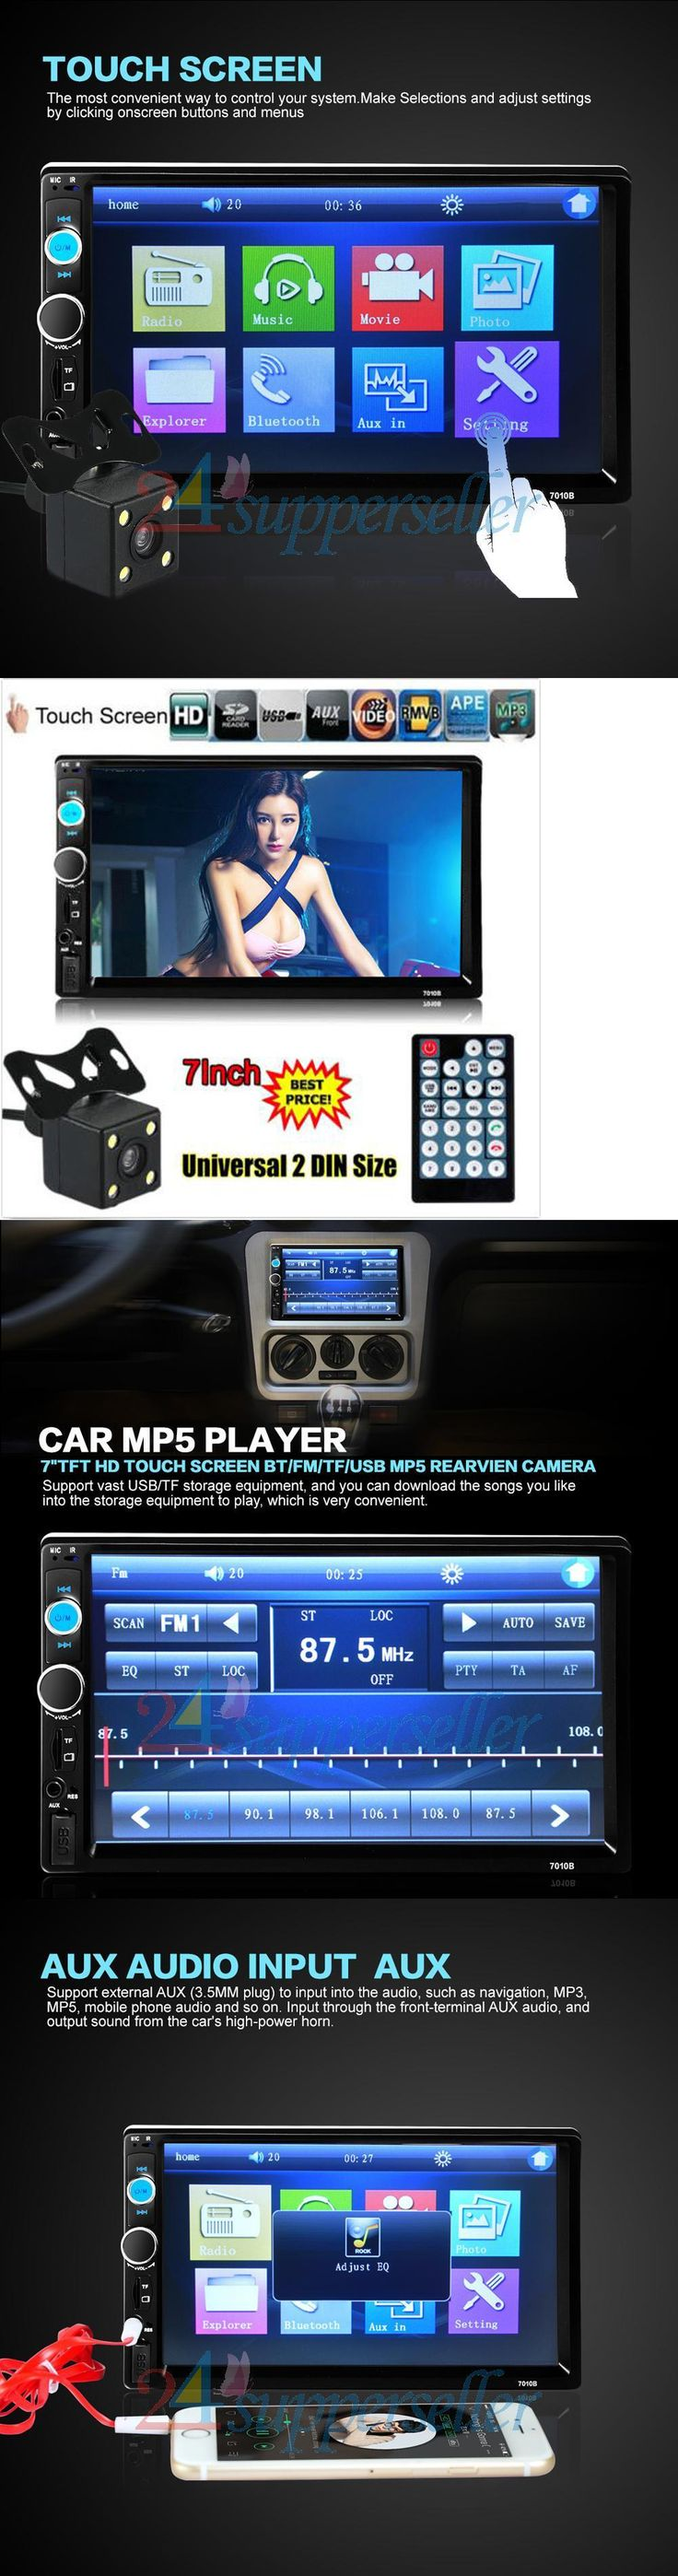 Car Audio In-Dash Units: 7 Double 2 Din Hd Car Radio Mp5 Mp3 Player Bluetooth Touch Screen Stereo Camera -> BUY IT NOW ONLY: $54.89 on eBay!